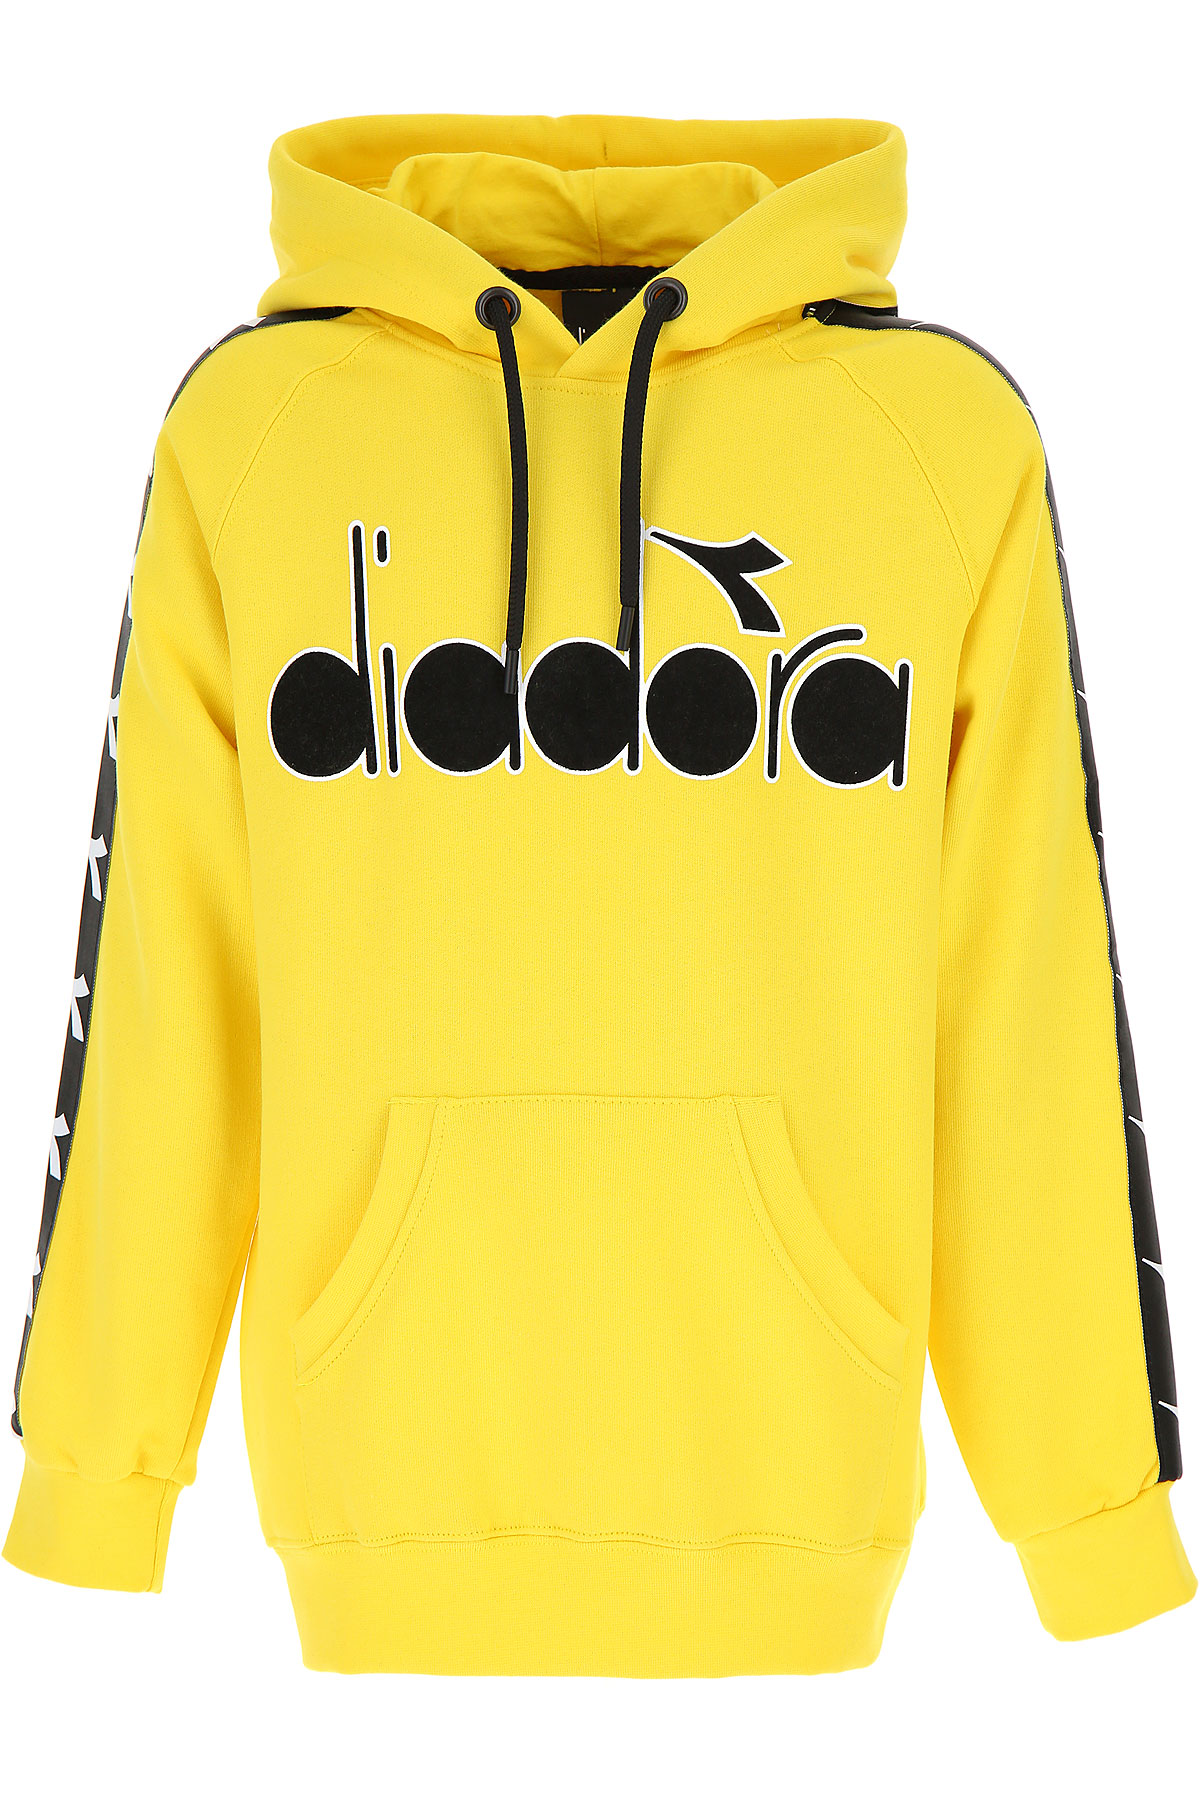 Image of Diadora Kids Sweatshirts & Hoodies for Boys, Yellow, Cotton, 2017, 10Y 14Y 8Y